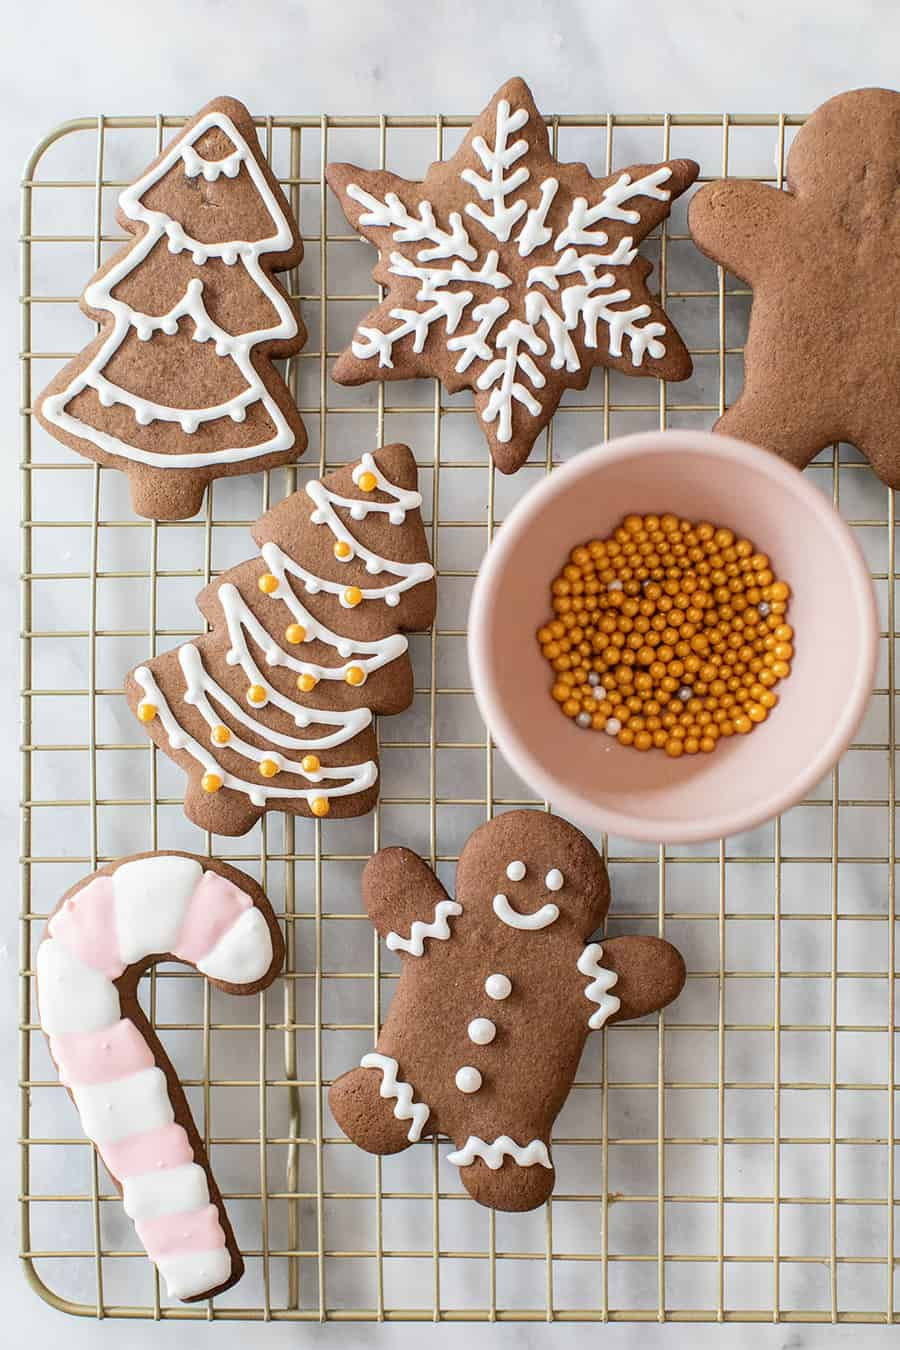 Gingerbread cookies decorated on a cooling rack